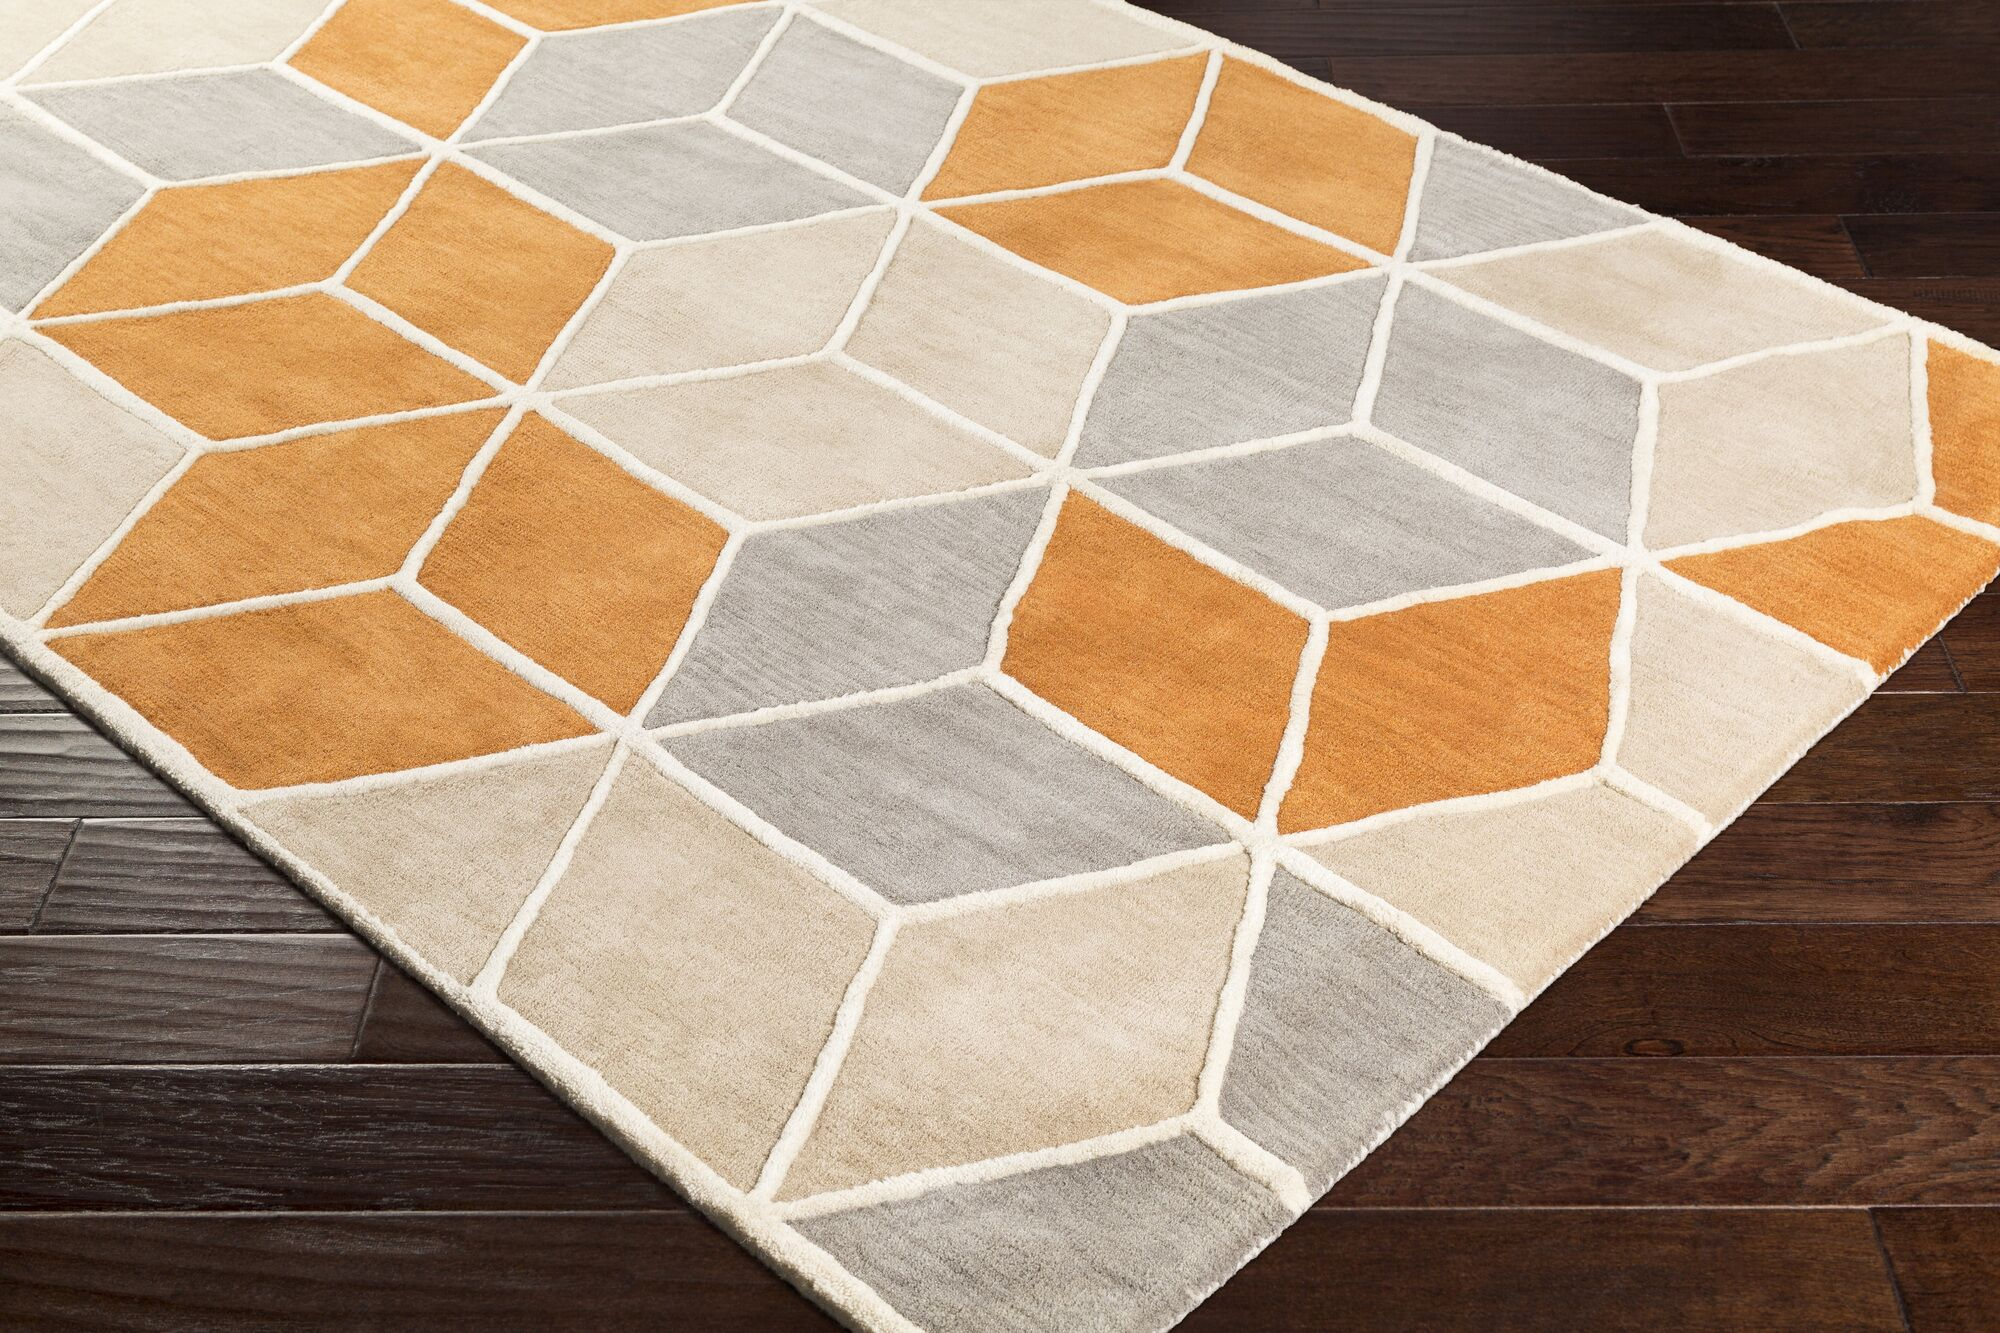 Vaughan Hand-Tufted Wool Burnt Orange/Khaki Area Rug Rug Size: Rectangle 8' x 11'